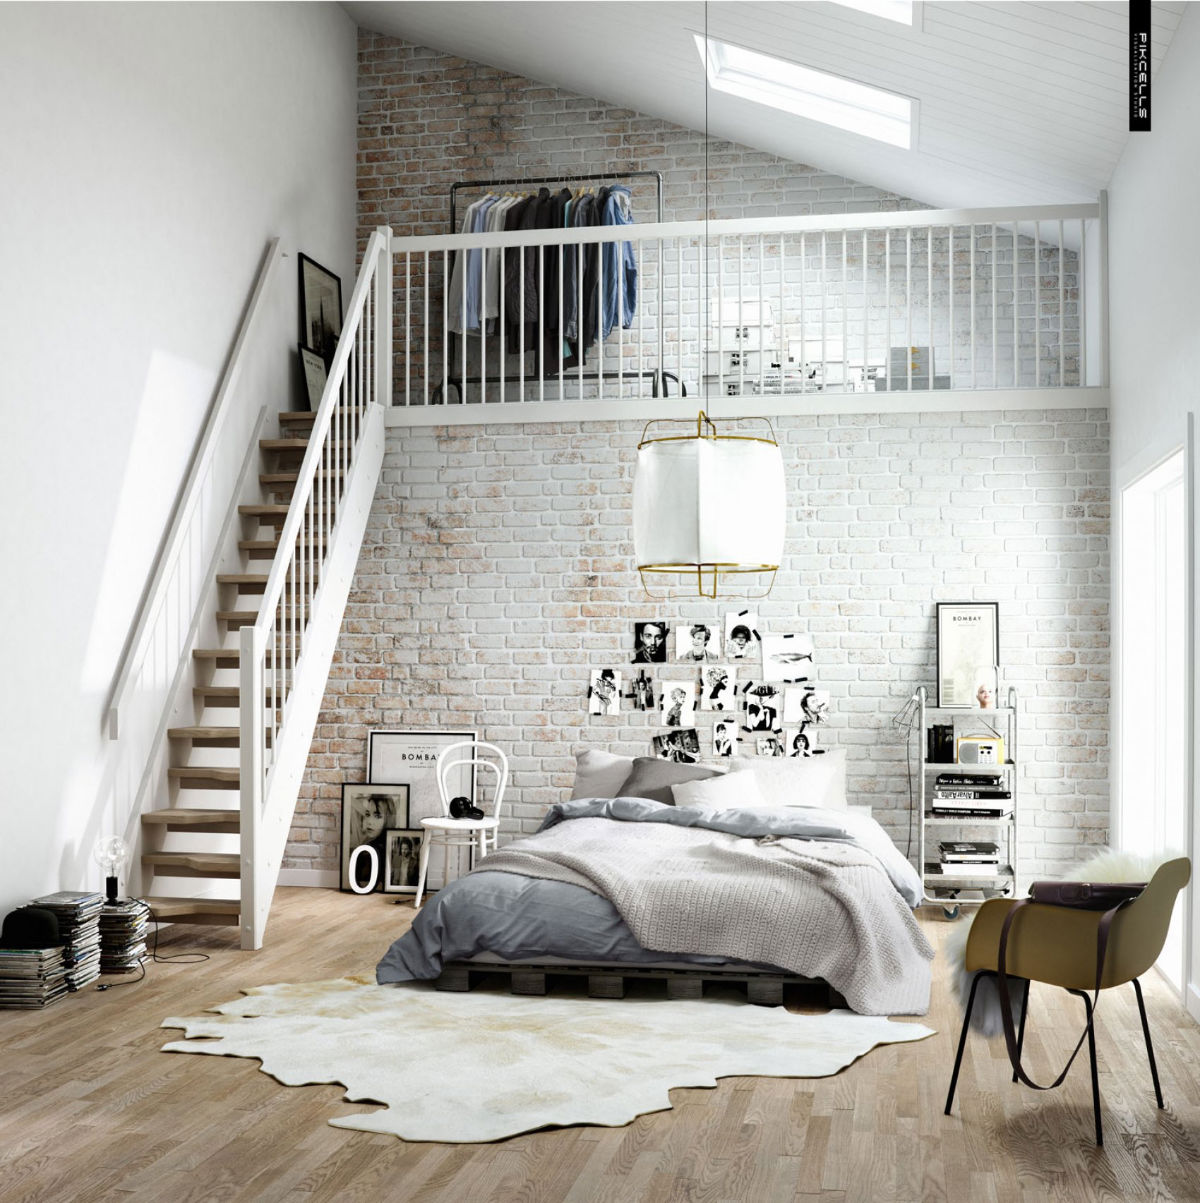 White Walls With High Stairs Exposed Brick Bedroom - Bedrooms with exposed brick walls